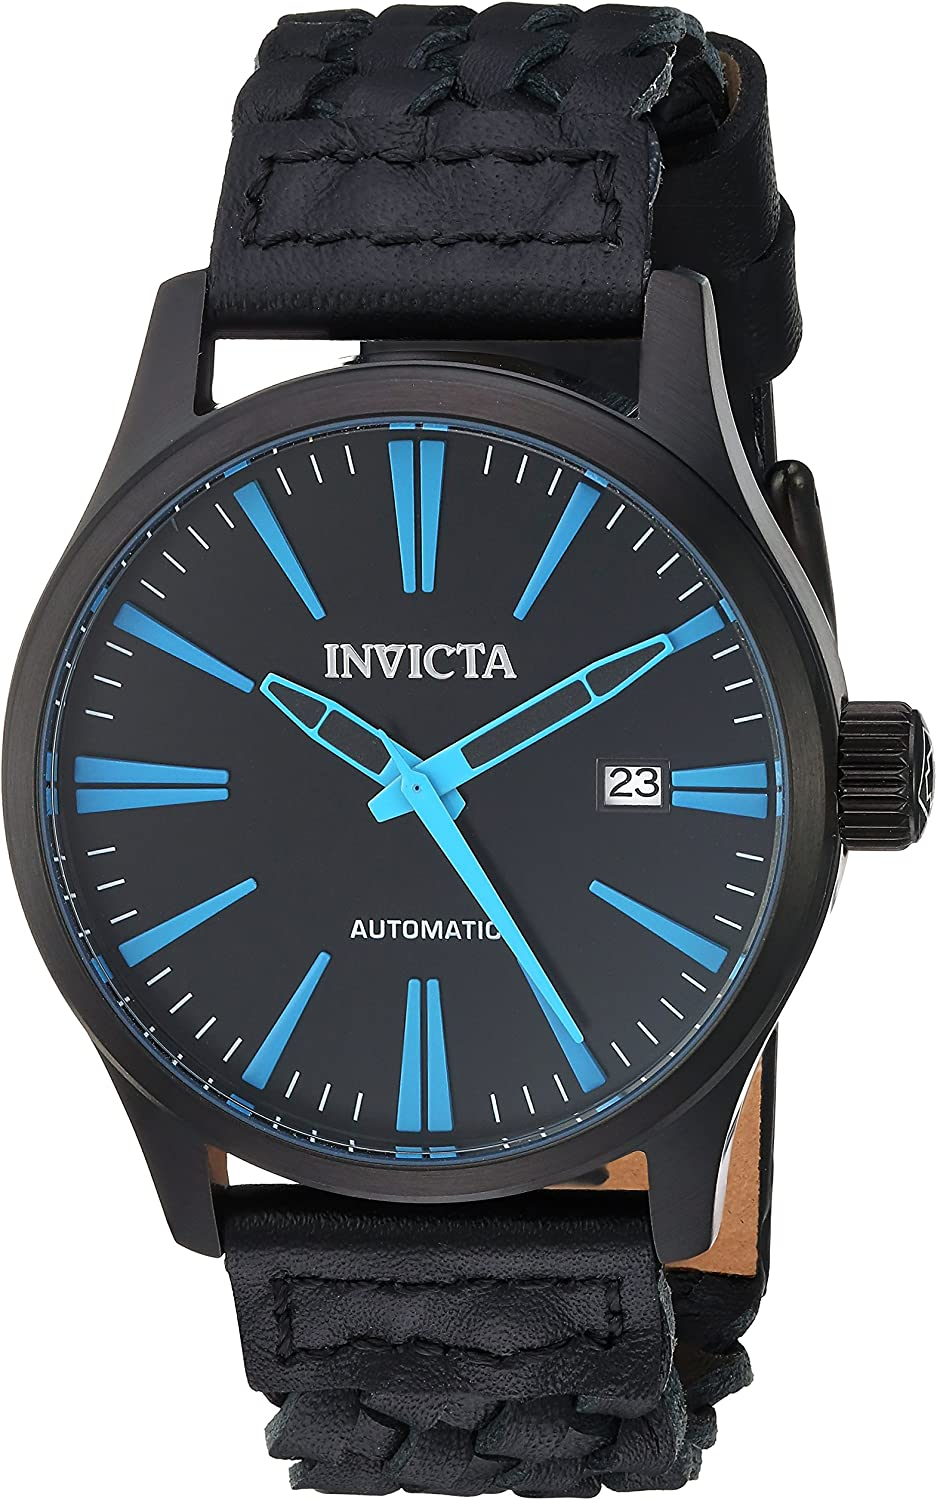 Invicta Men s I-Force Stainless Steel Automatic-self-Wind Watch with Leather Calfskin Strap, Black, 21 Model 23778